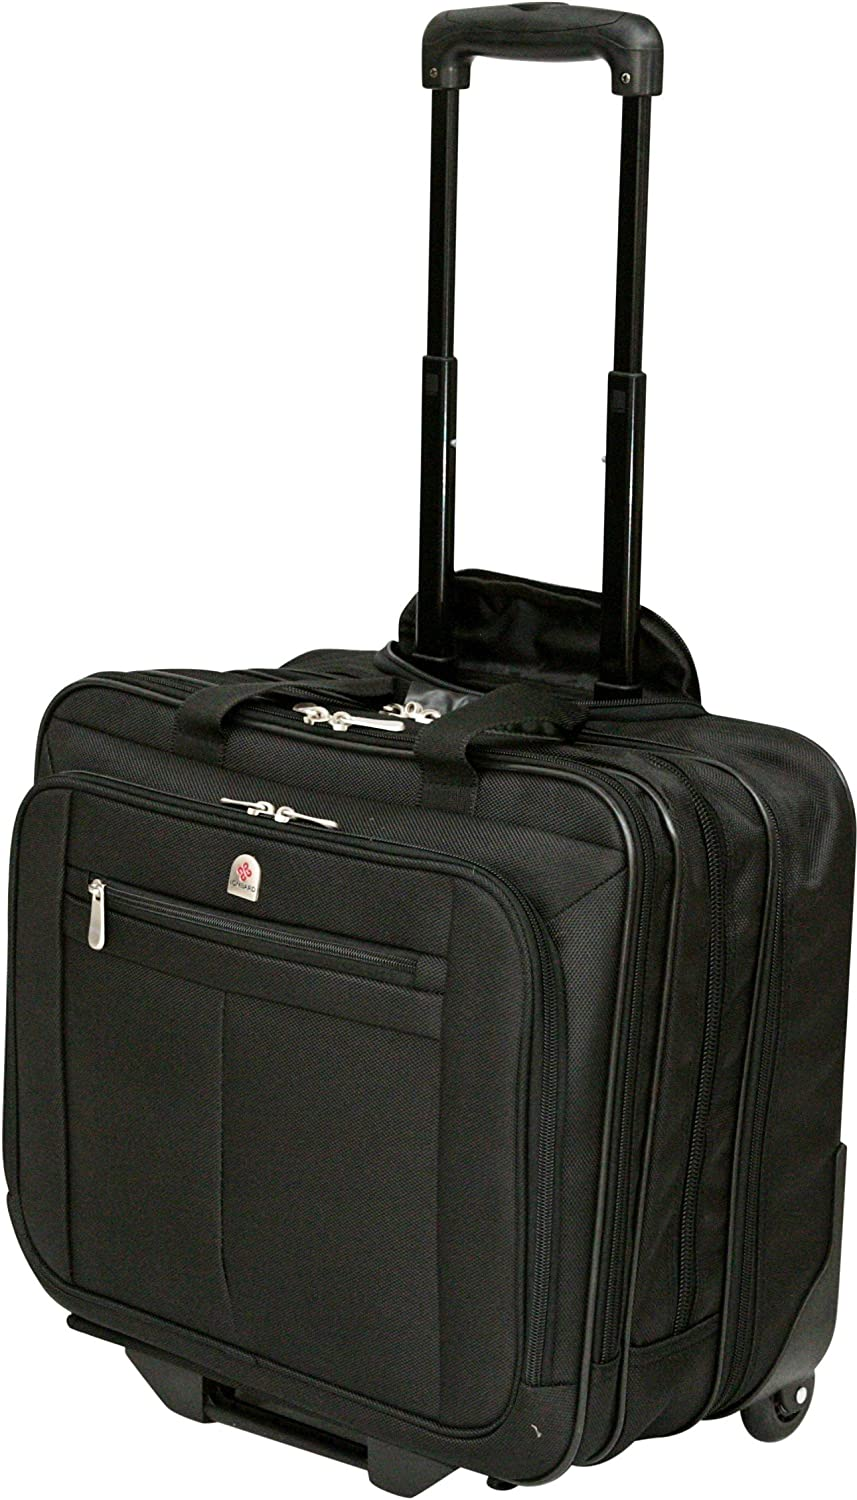 "Executive Laptop Roller Bag Wheeled Pilot Case Briefcase Overnight & 15"" - 17"" Laptop Compartment"